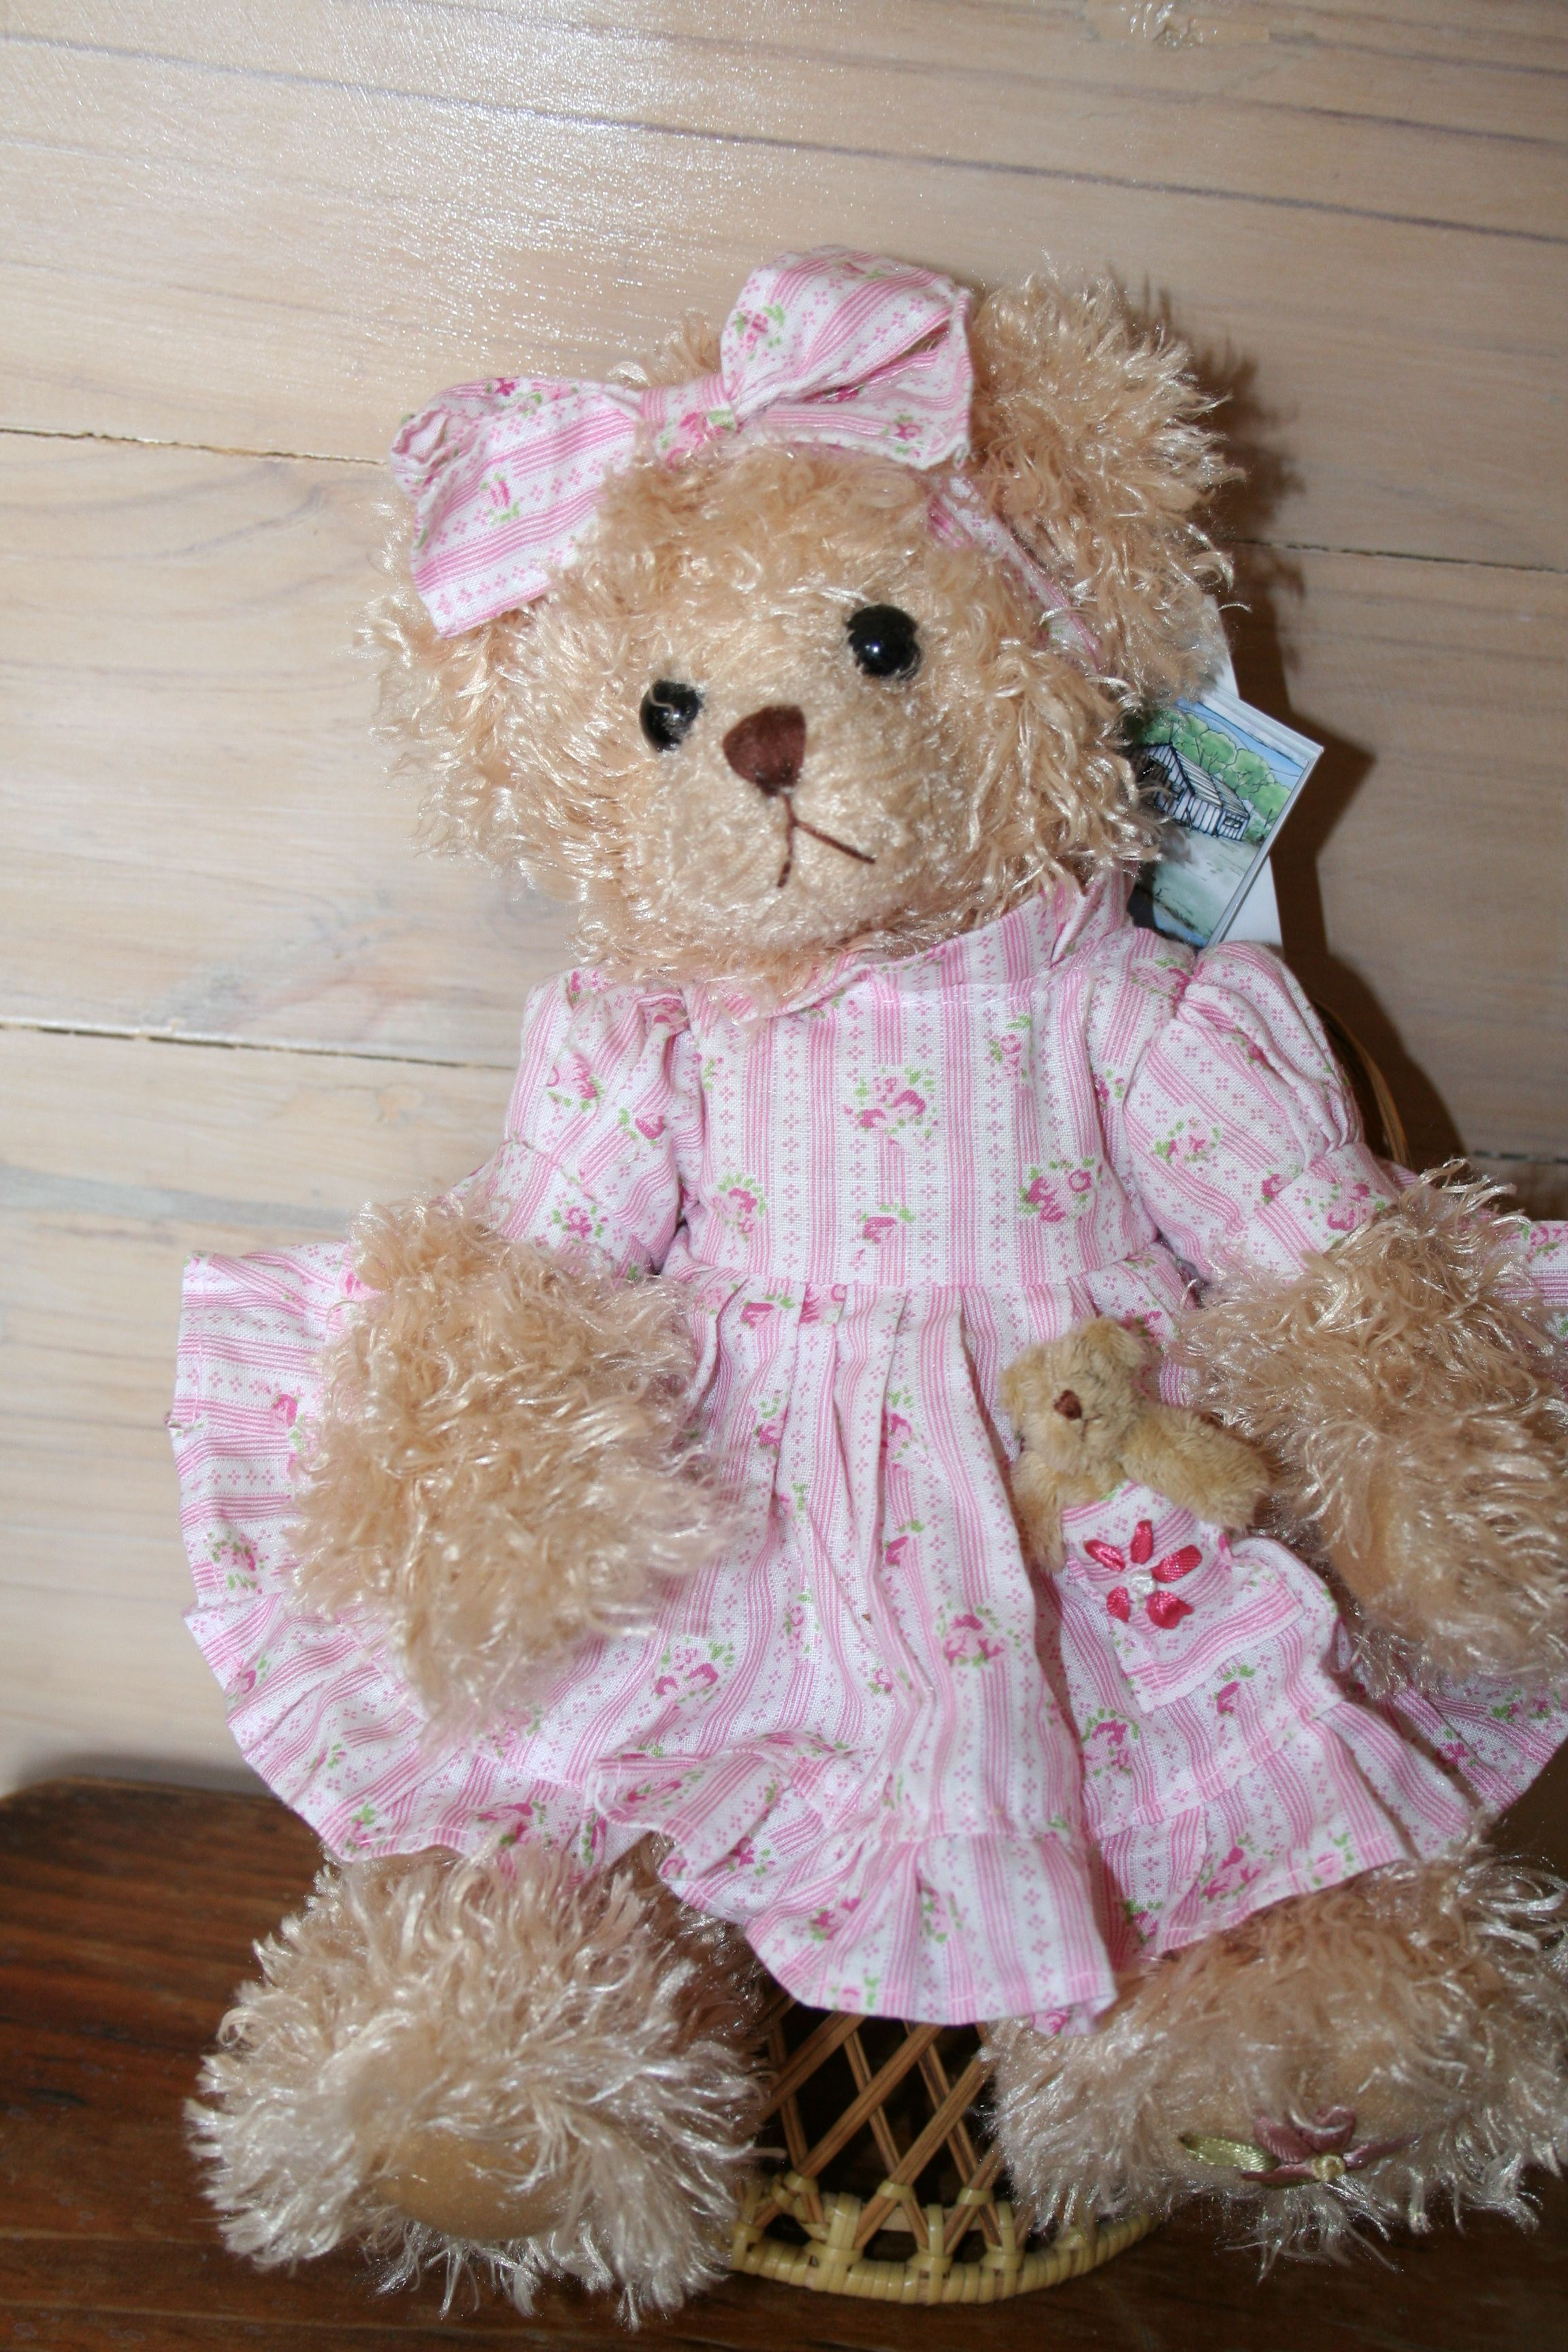 Baby Shops Helensvale Daisy From The Helensvale Collection Of Settler Bears Price Aud